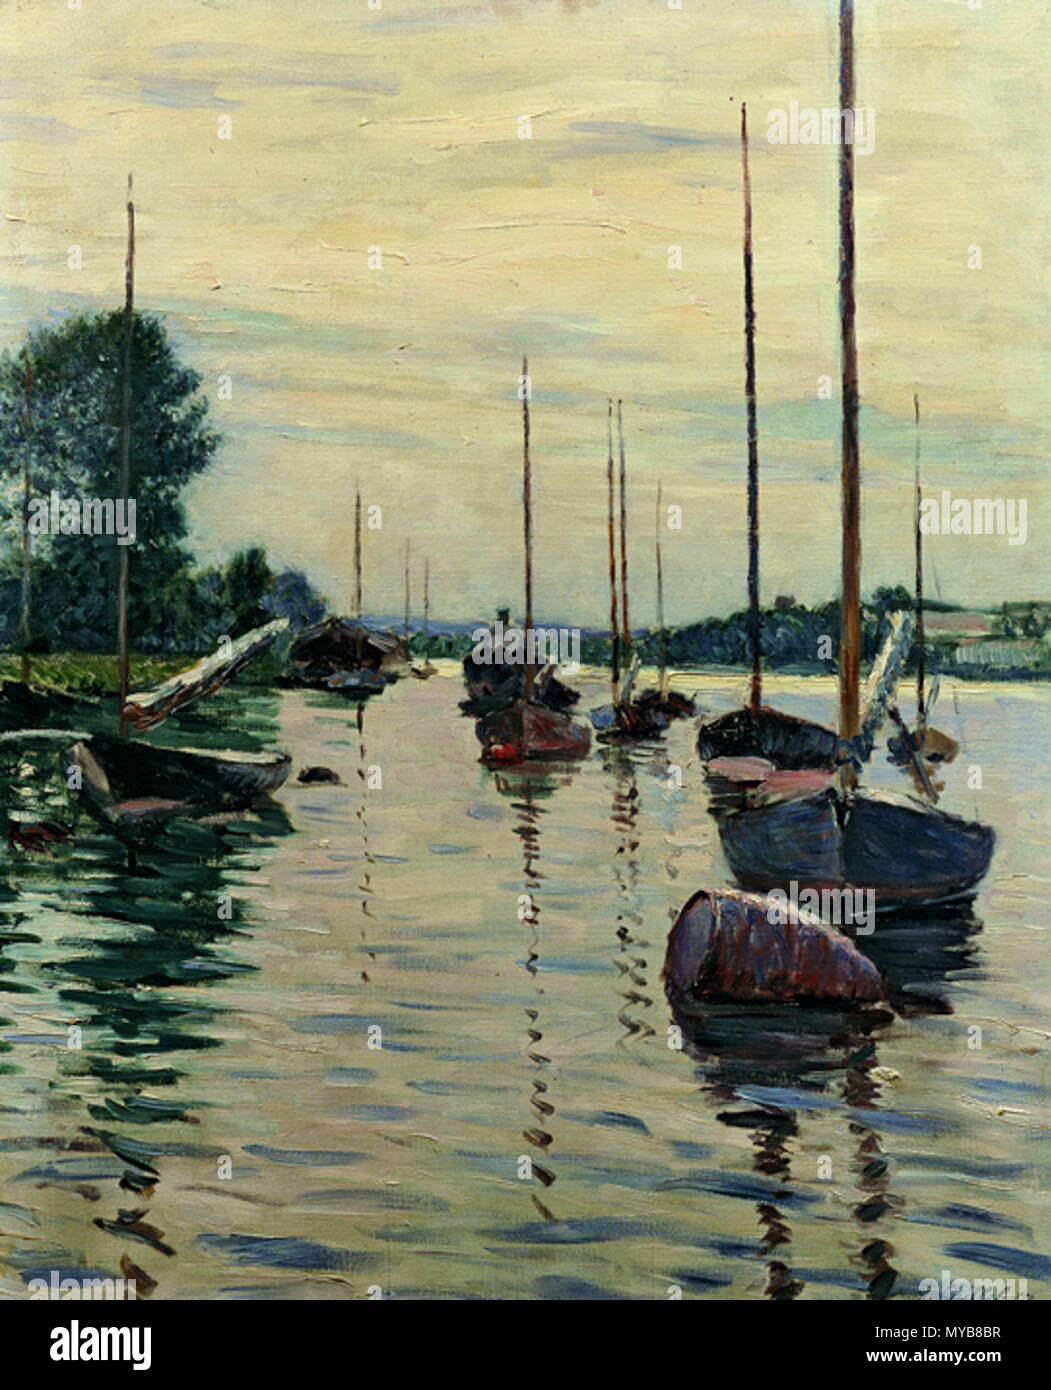 . Boats Moored on the Seine . 1892.    Gustave Caillebotte (1848–1894)   Alternative names Gustav Caillebotte; Caillebotte  Description French painter, art collector, patron, philatelist, marine architect and sailor  Date of birth/death 19 August 1848 21 February 1894  Location of birth/death Paris Gennevilliers  Work period between 1863 and 1893  Work location Paris, Petit-Gennevilliers, Yerres, Honfleur (1880–1889), Trouville-sur-Mer (1880–1893)  Authority control  : Q295144 VIAF:71399604 ISNI:0000 0001 2102 2151 ULAN:500011706 LCCN:n81047695 NLA:36549705 WorldCat 87 Brooklyn Cailleb - Stock Image